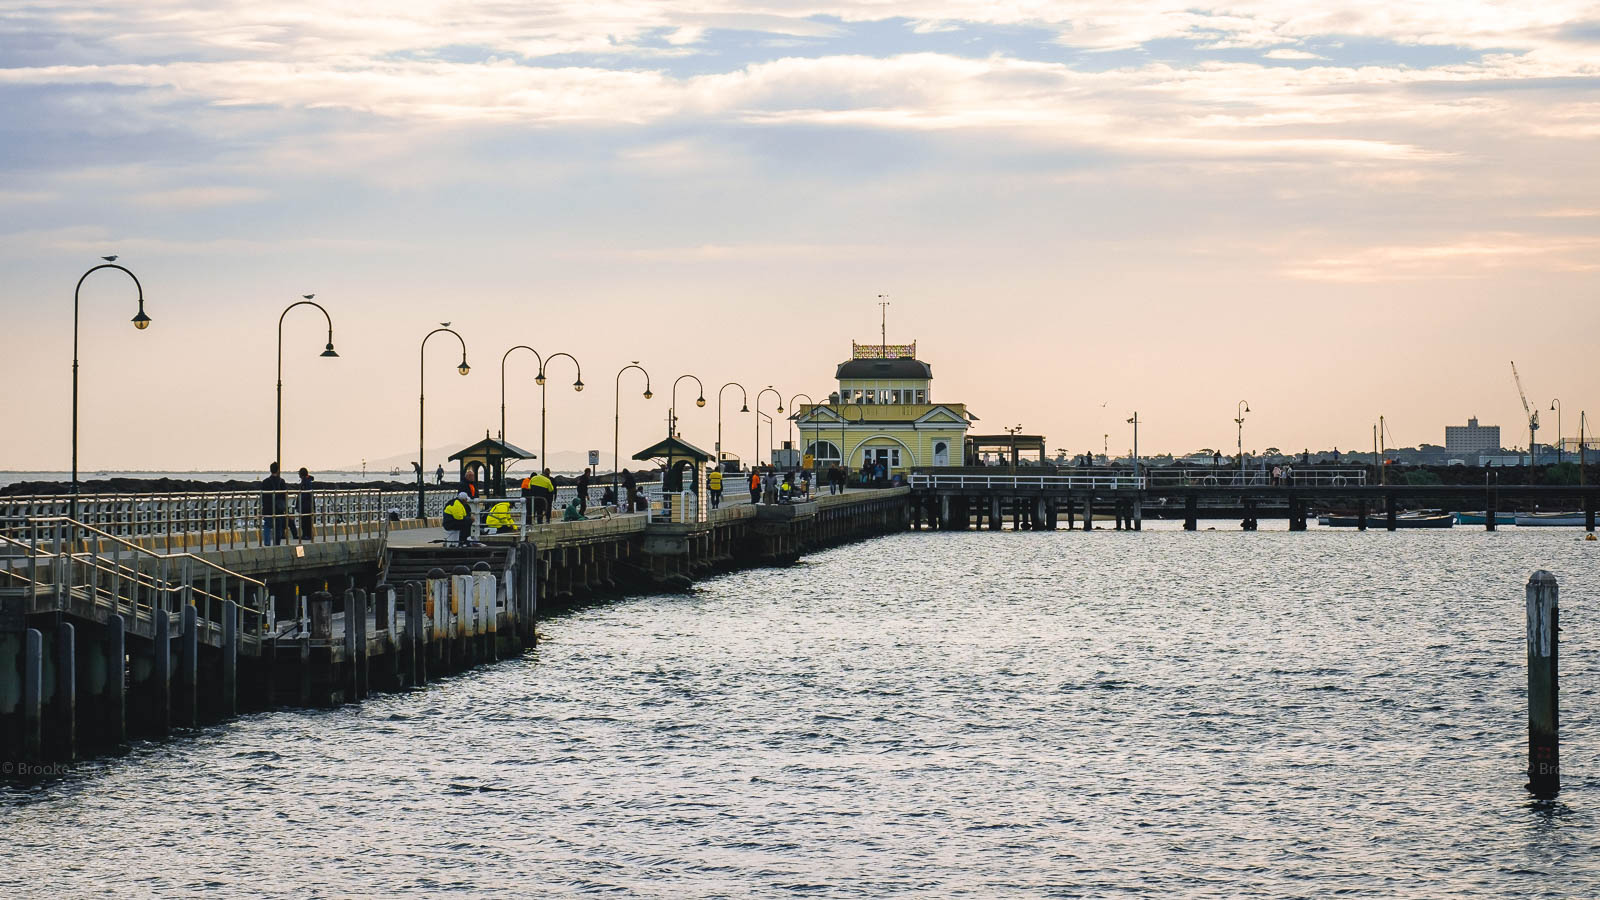 Before sunset at St Kilda Pier, Melbourne